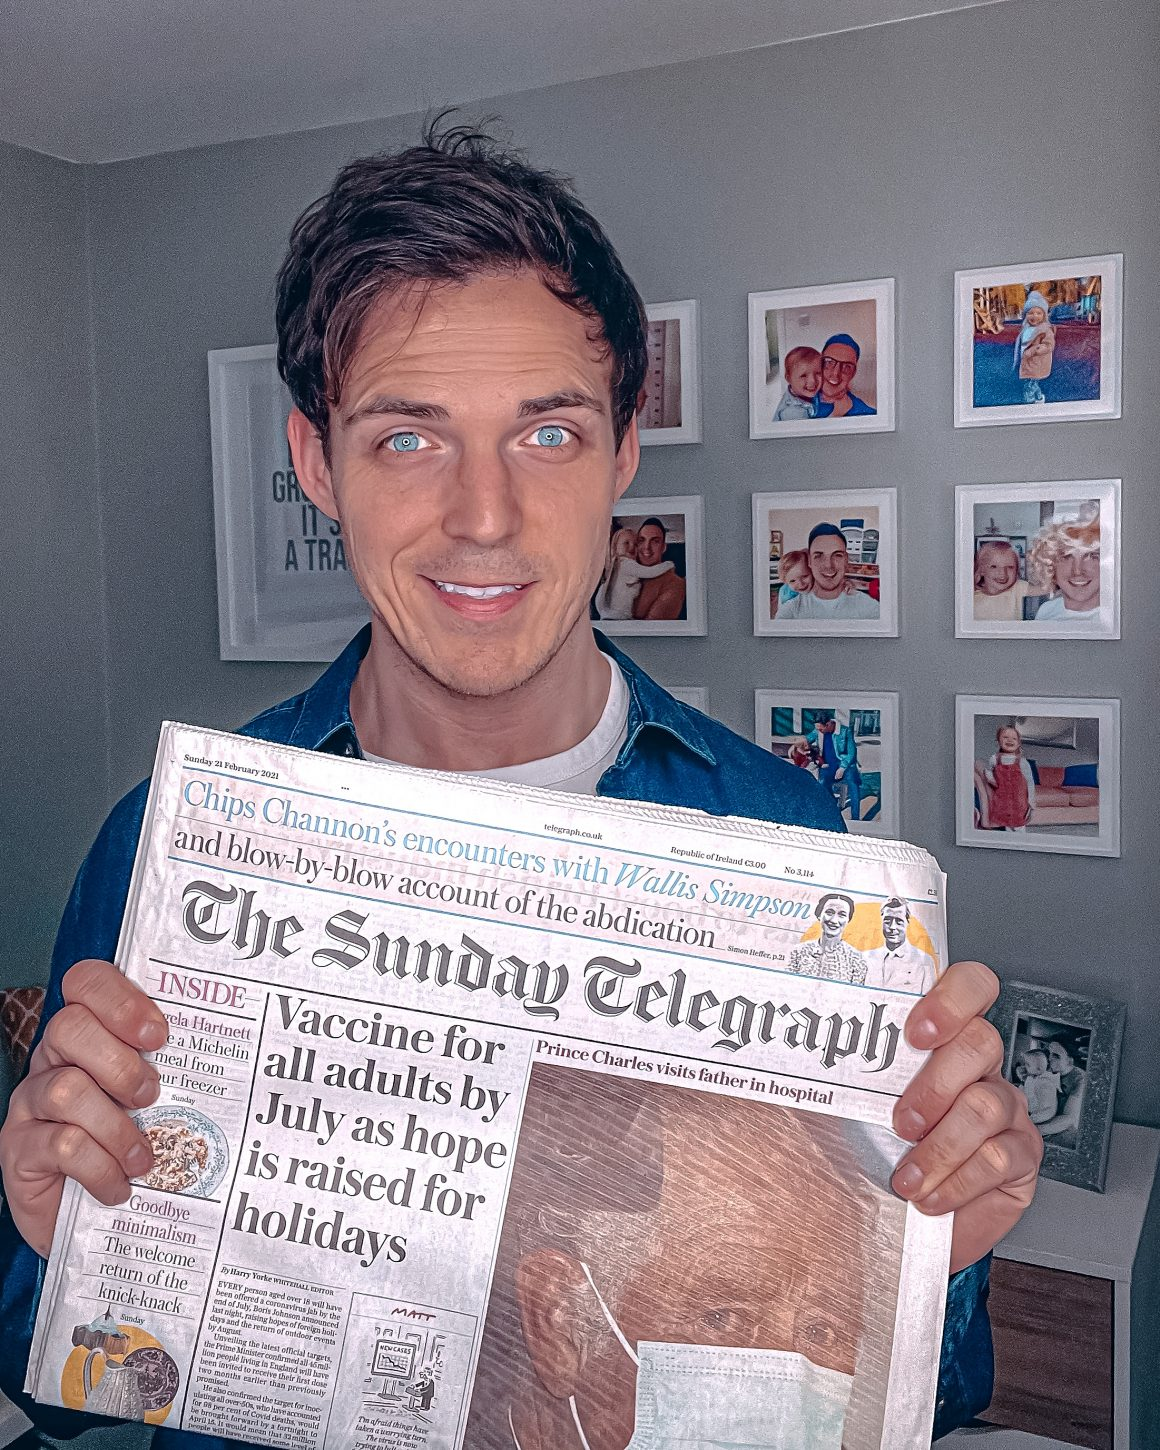 Dan holding a copy of The Sunday Telegraph